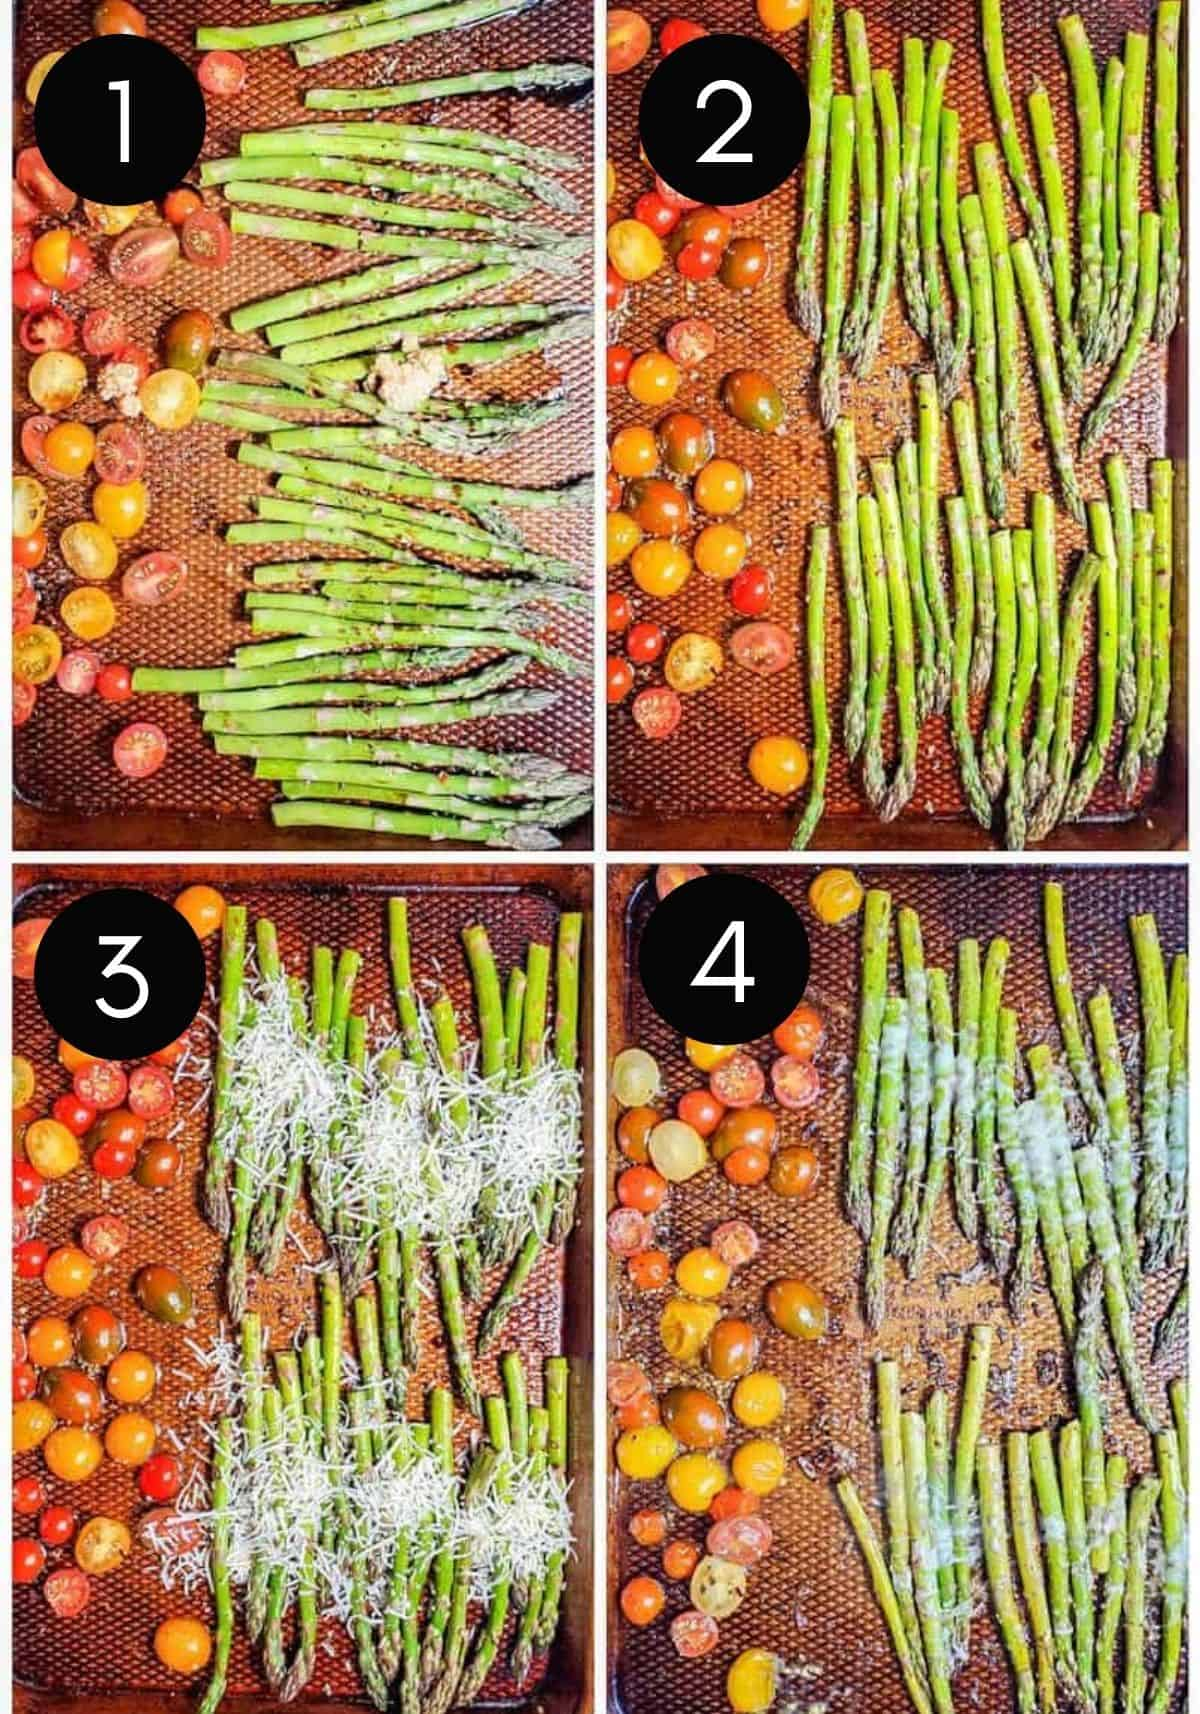 Four prep image collage showing asparagus get baked on pan with tomatoes and cheese.